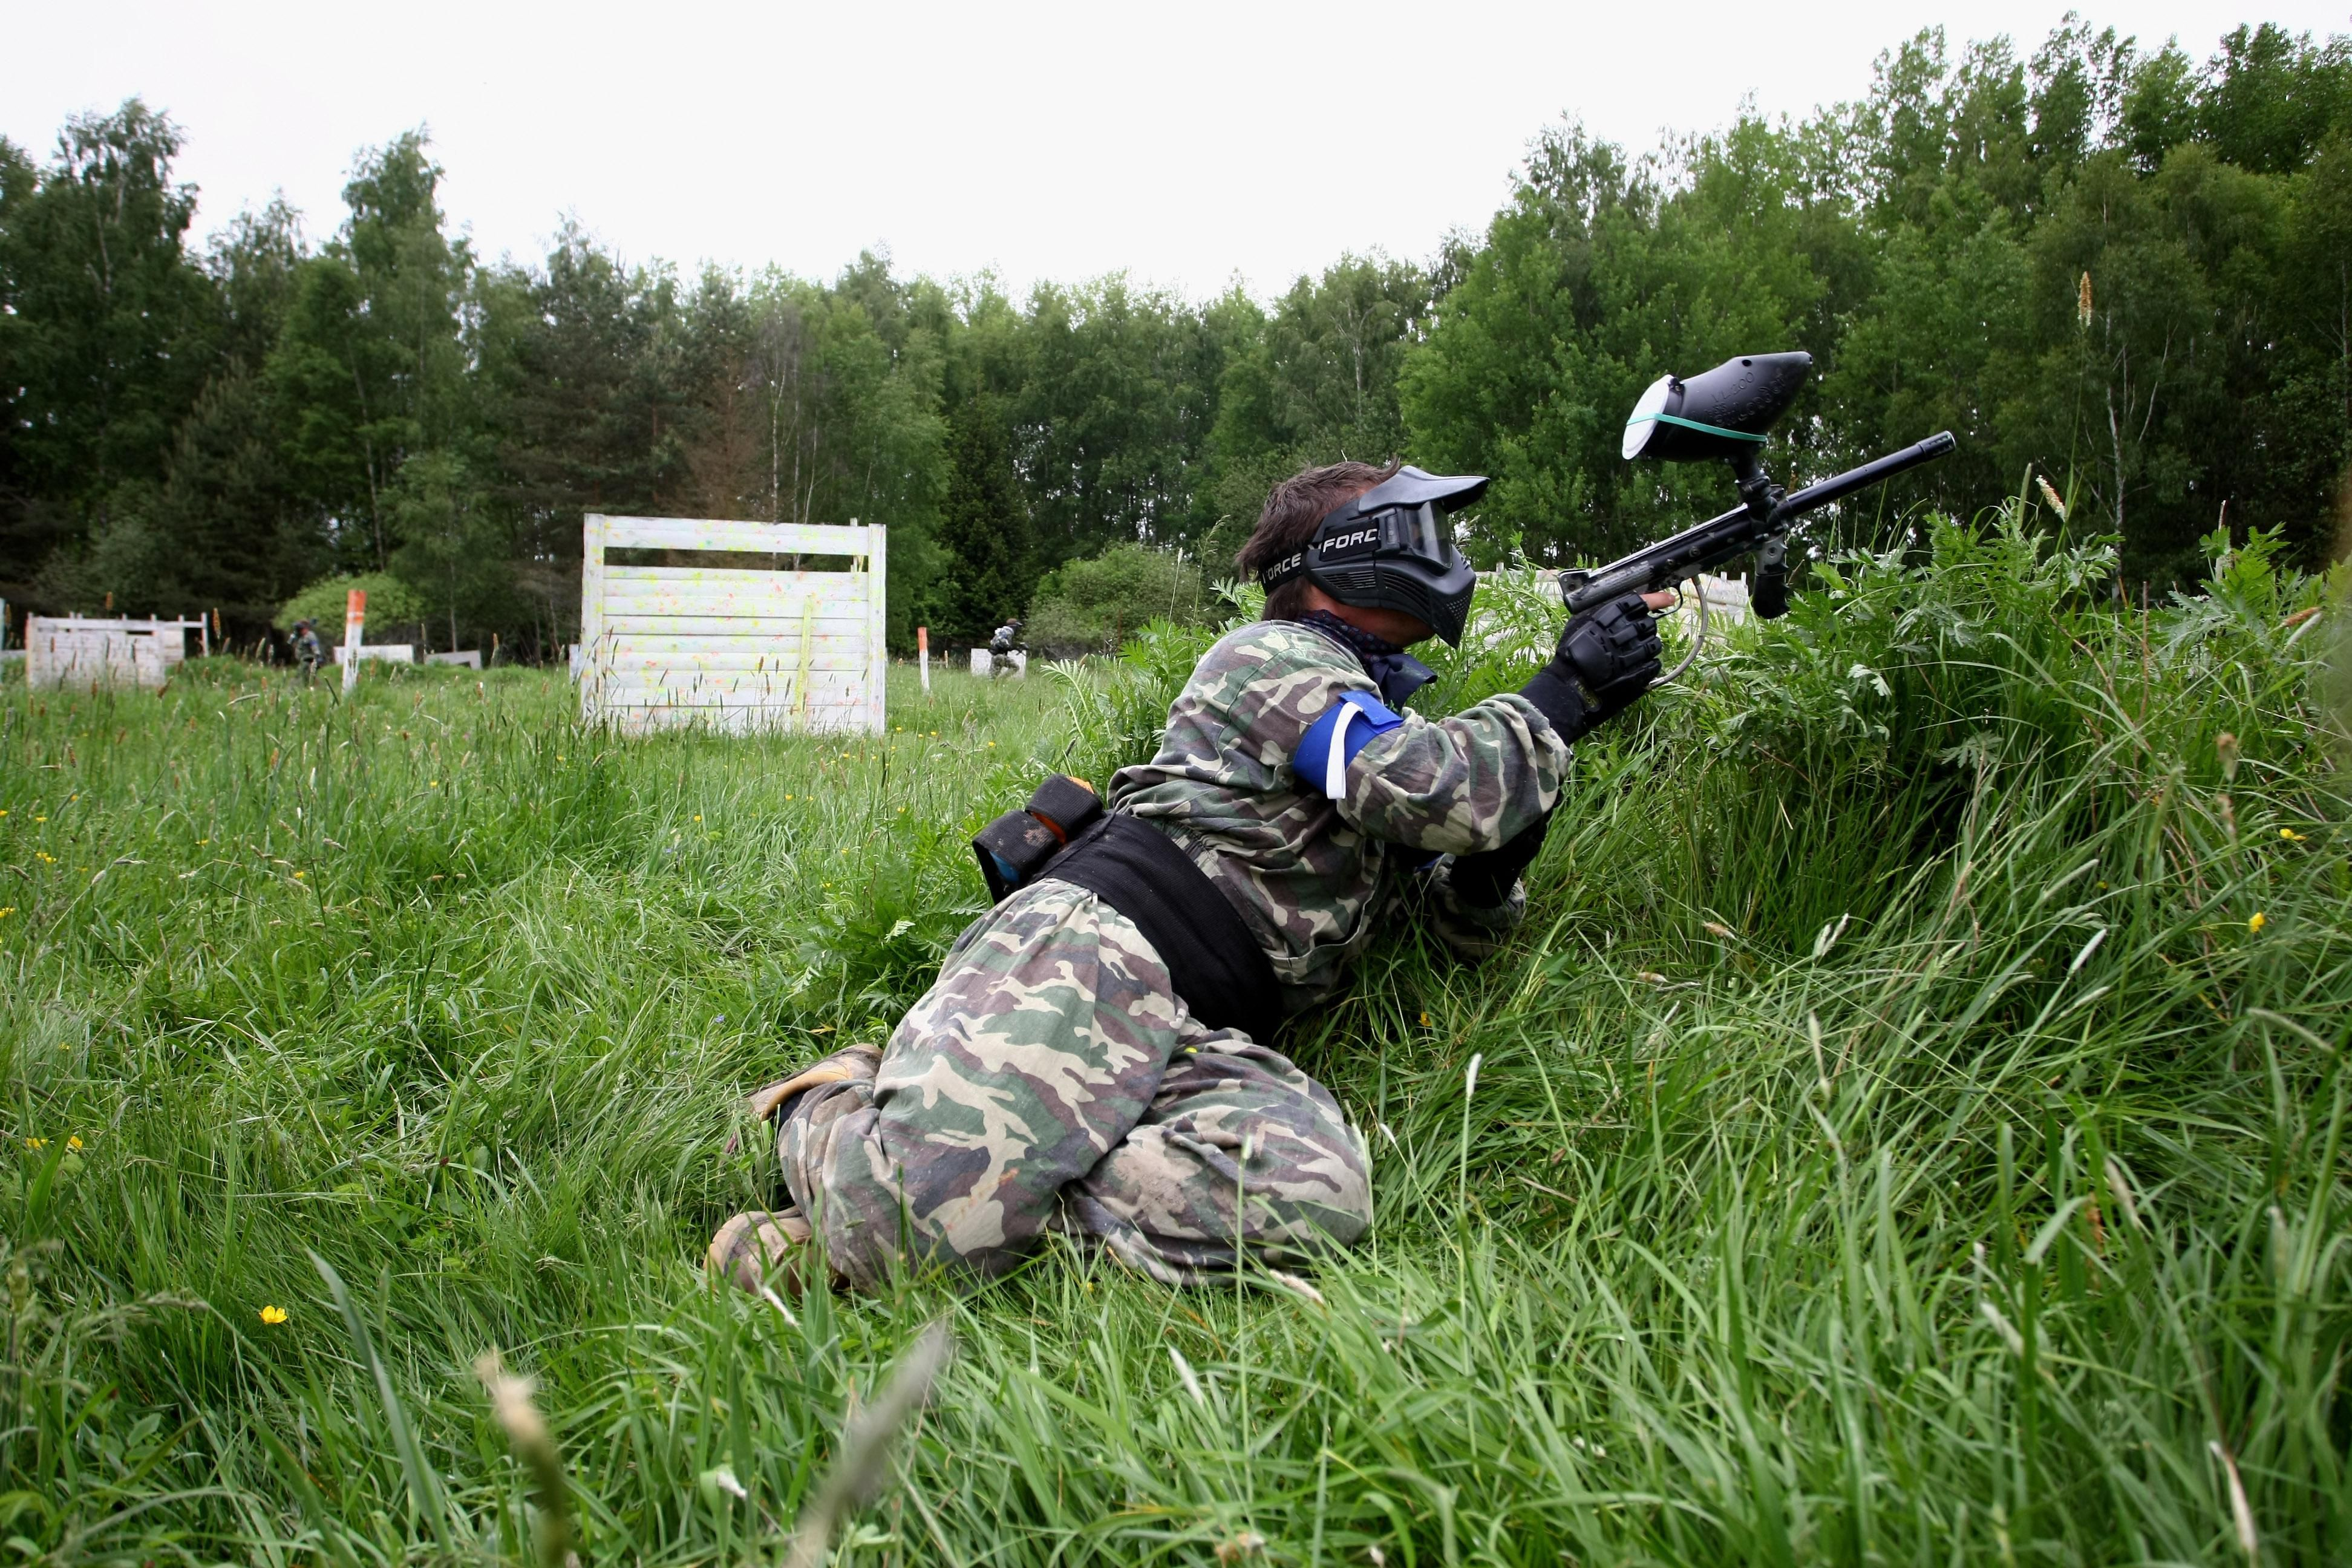 paint ball business Paintball safety introduction also known as war games were first introduced into the uk in 1984 since its introduction it has developed as a popular past time with approximately one million uk participants, and is now a european competitor sport.